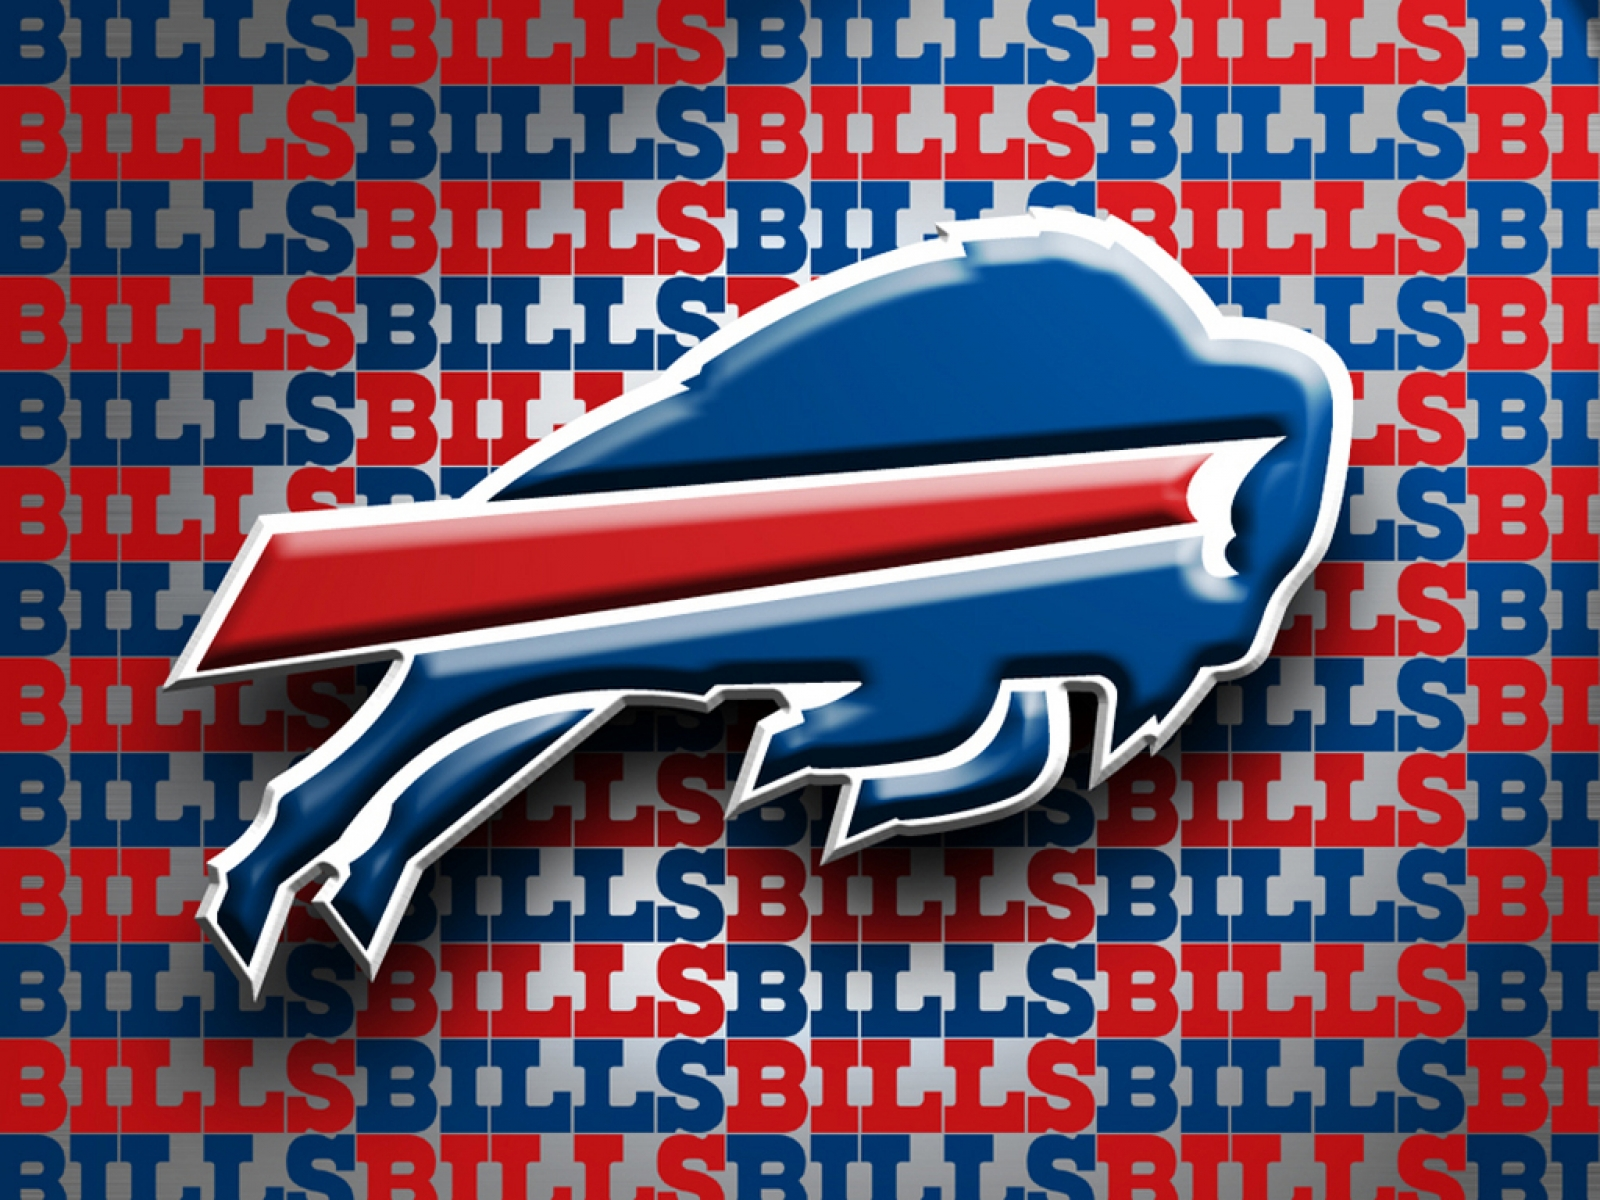 Buffalo Bills desktop image Buffalo Bills wallpapers 1600x1200